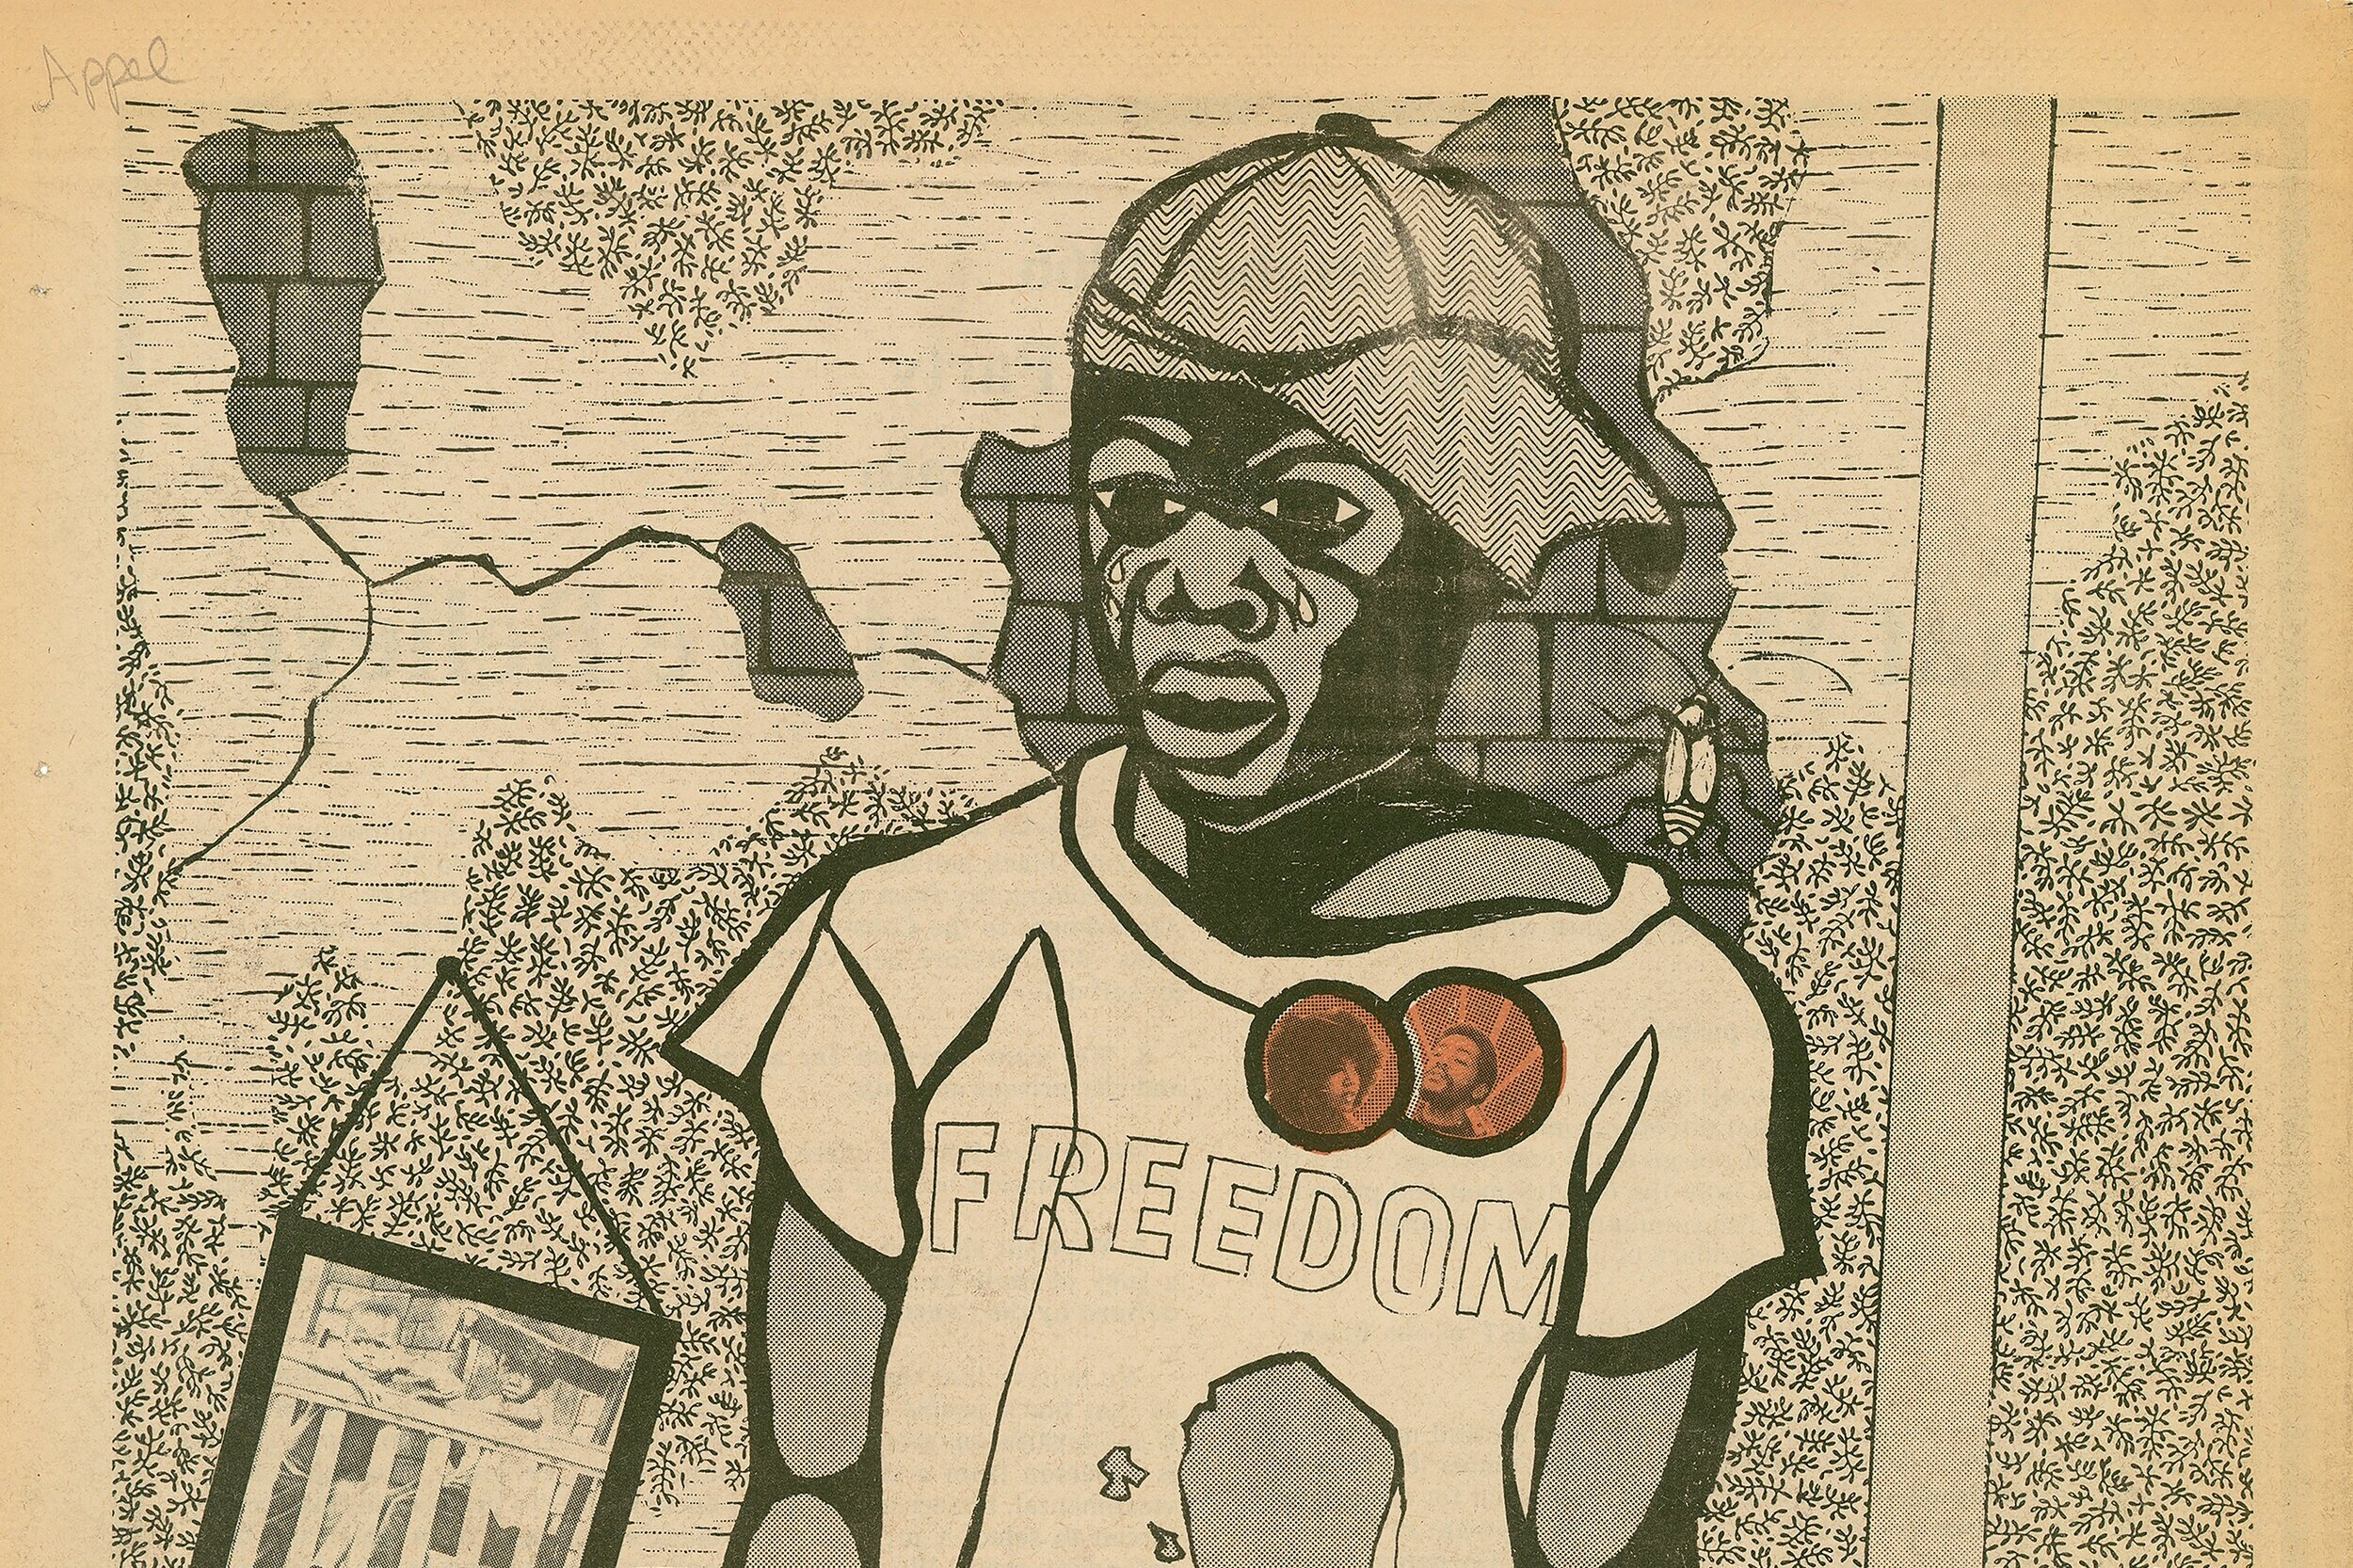 """The 11th Annual Black Panther Party Film Festival - Presented by the NY Black Panther Party Commemoration CommitteeOctober 3rd-6thDedicated to #7 of Black Panther Party 10 Point Program: """"We want an immediate end to Police brutality."""""""